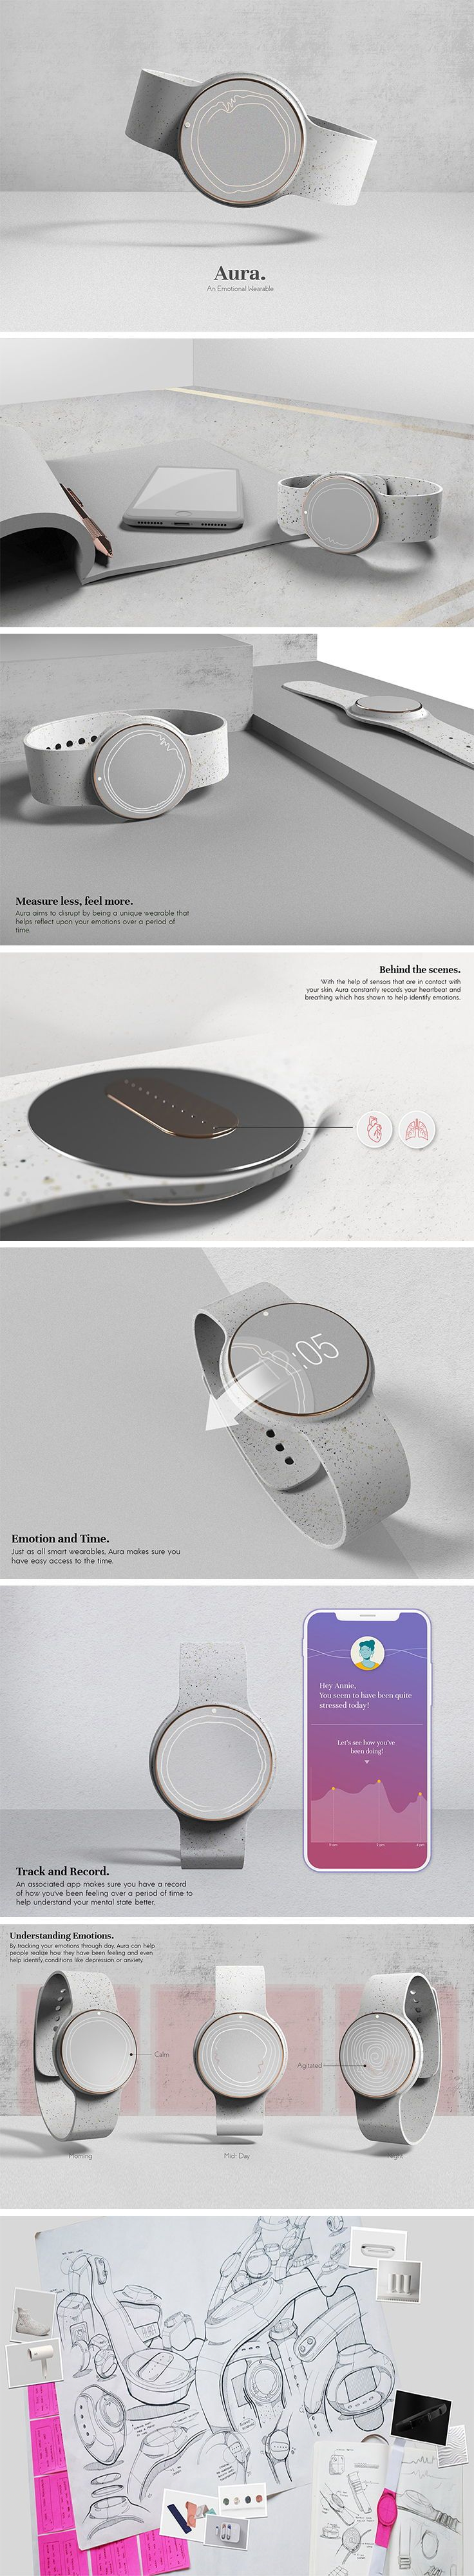 AURA is a twist on wearable tech that isn't focused on your steps or trying to help you build muscle, rather, it's aim is to help you master your mental fitness! Designed for anyone struggling with mental illness, depression or distress, it uses biometric sensors to detect stress, anger, sadness and happiness.